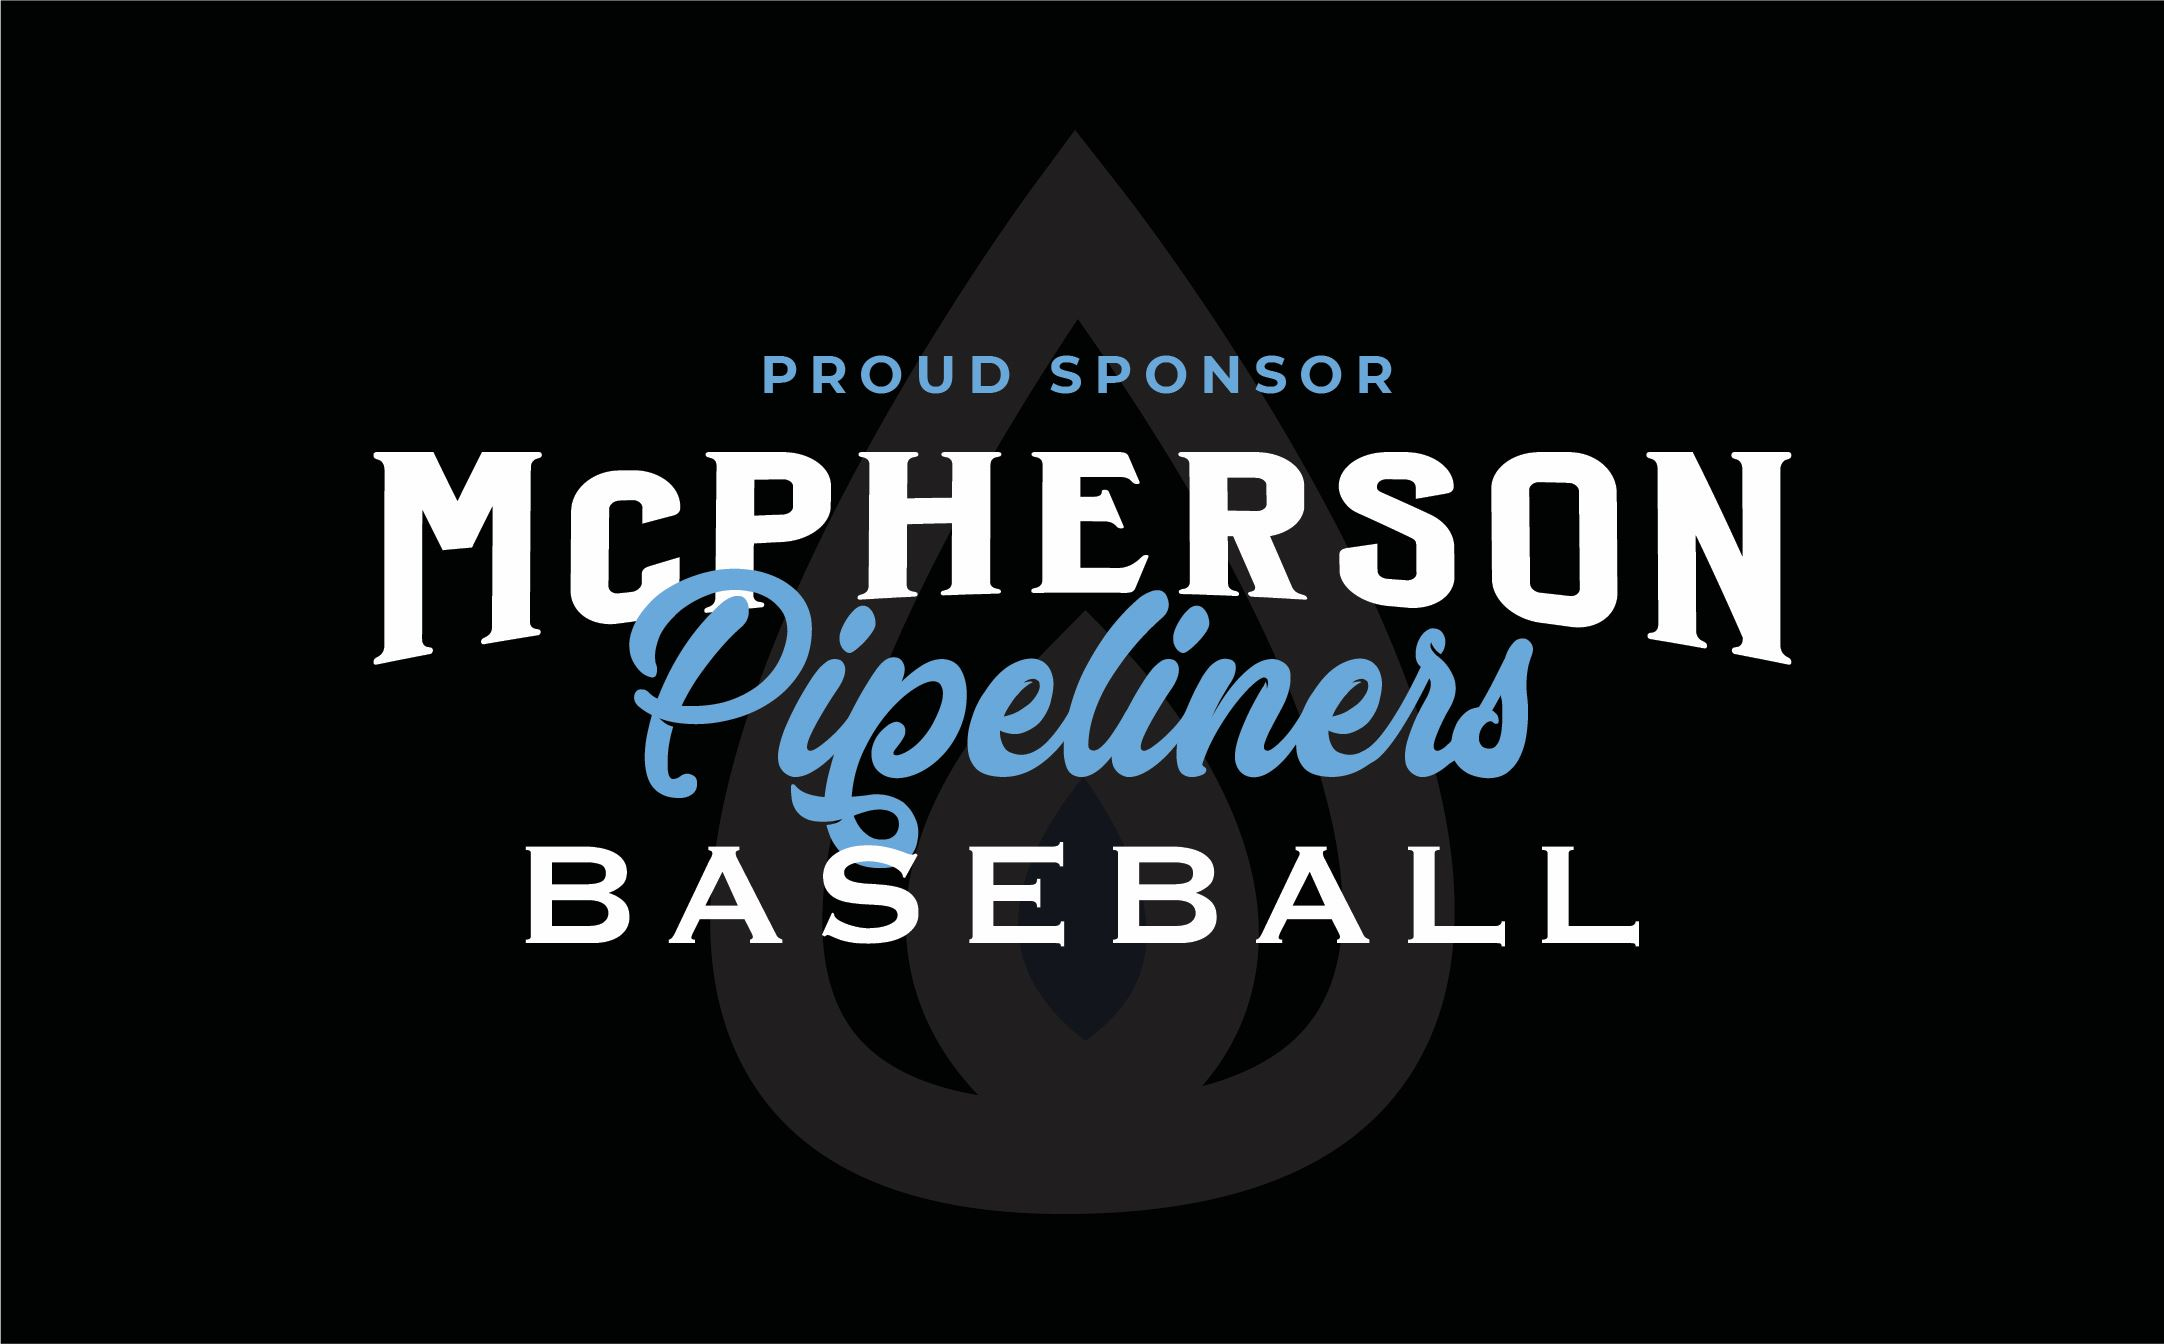 Black background with the white words PROUD SPONSOR for the McPherson Pipeliners baseball team